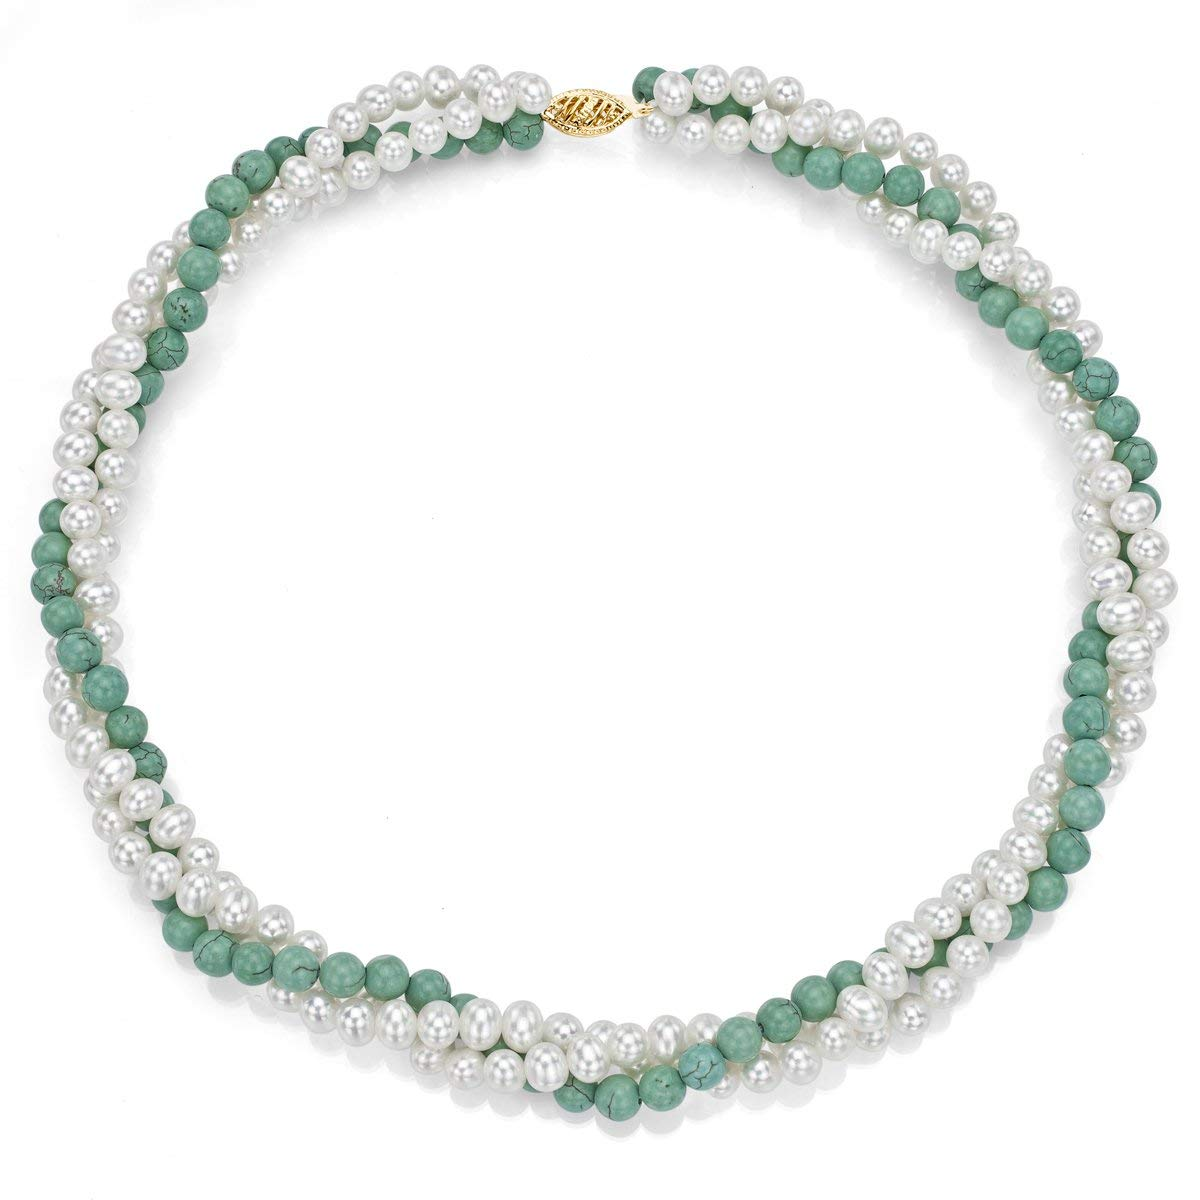 """La Regis Jewelry 14k Yellow Gold 4-4.5mm White Freshwater Cultured Pearl 4mm Simulated Turquoise Twisted Necklace 16"""""""